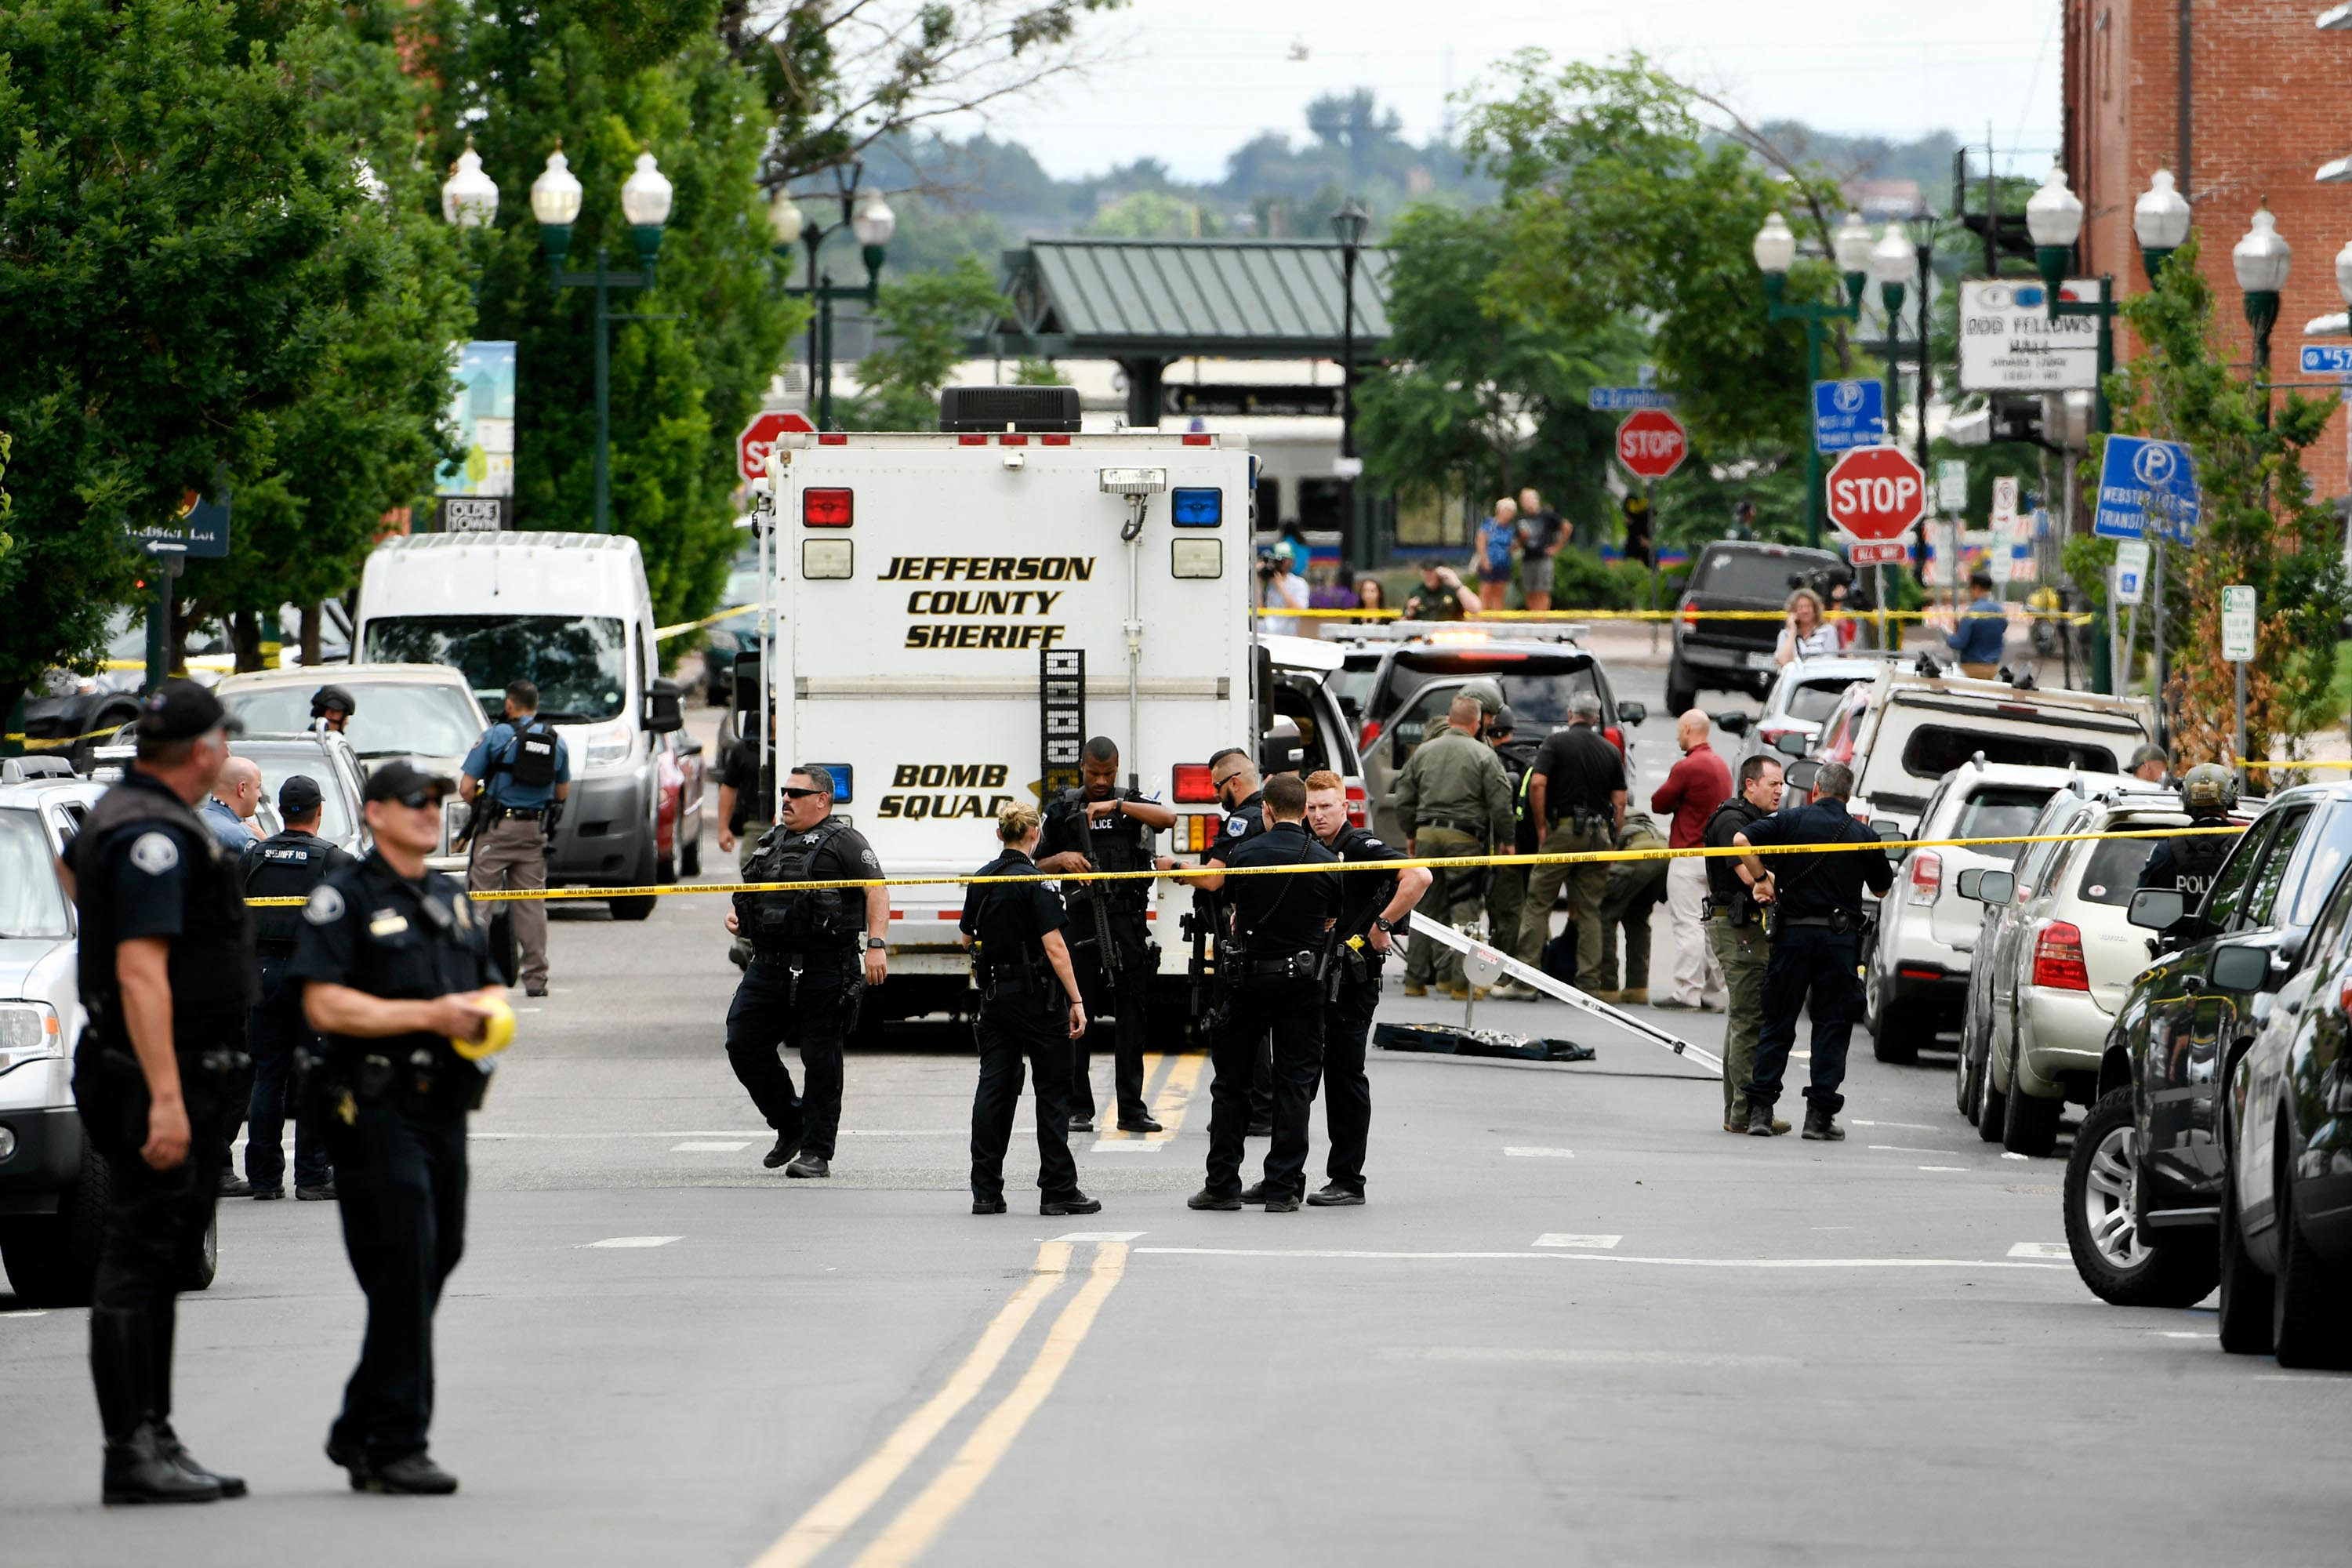 Police officers investigate the scene of an early afternoon shooting in Olde Town Arvada on June 21, 2021 in Arvada, Colorado.